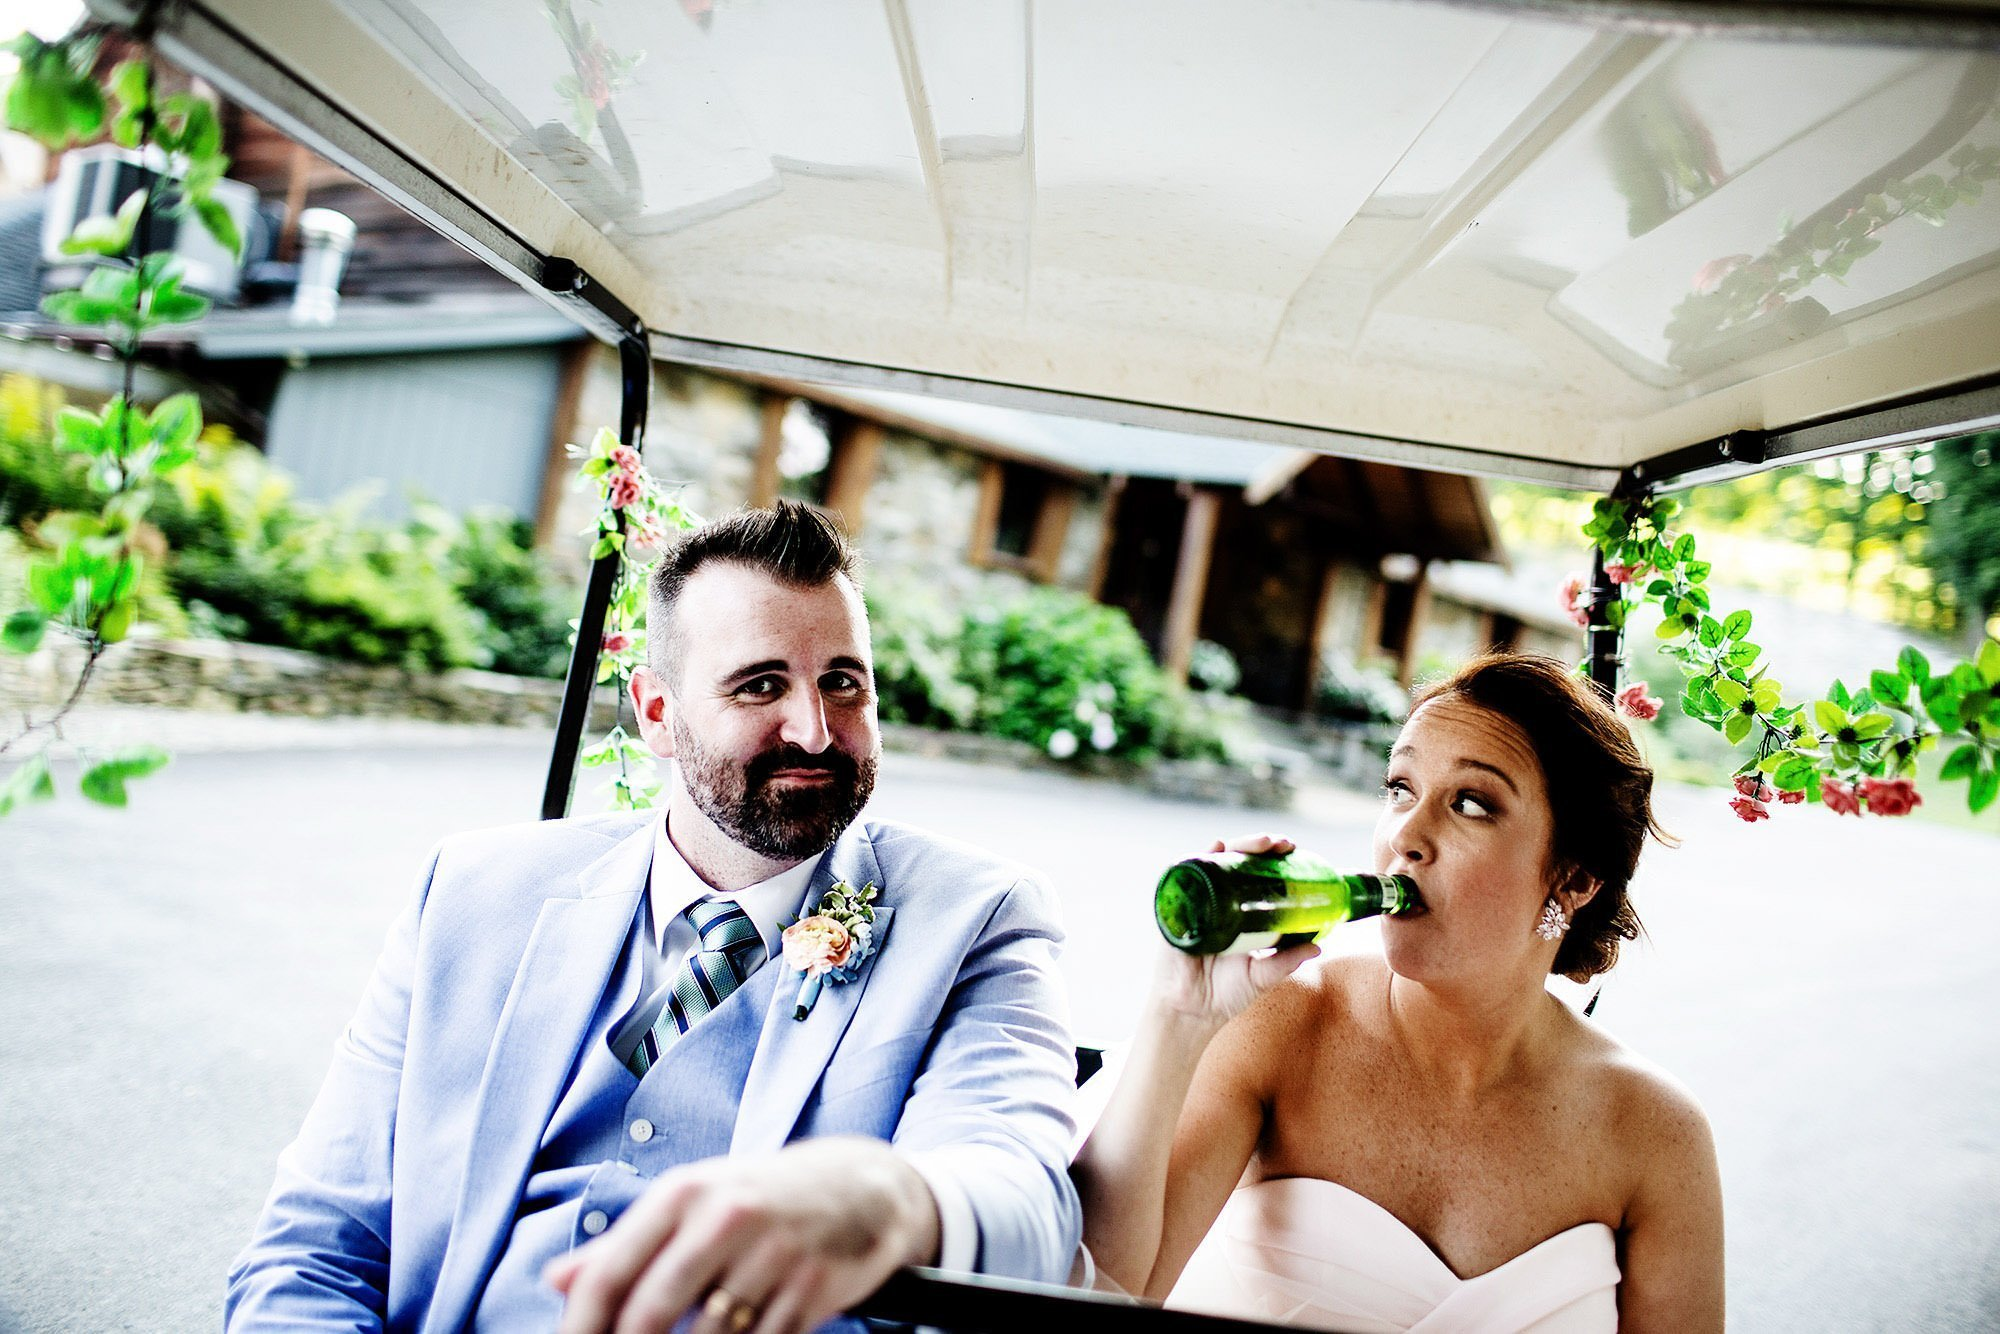 Red Maple Vineyard Wedding  I  The bride and groom ride a golf cart while drinking beer following their wedding ceremony.